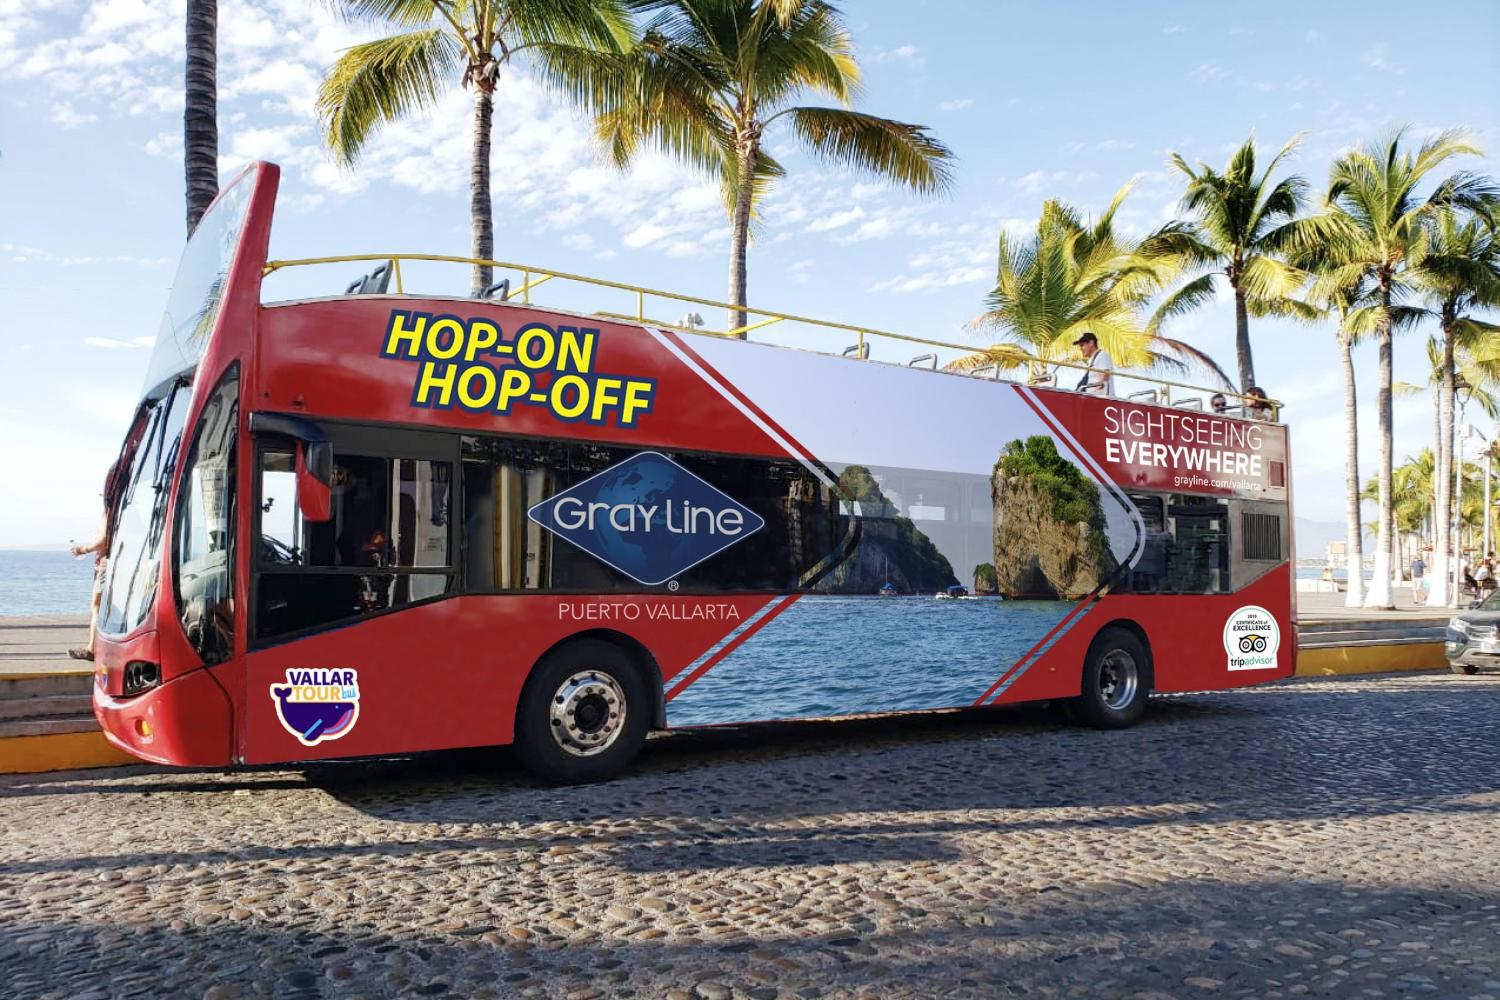 Puerto Vallarta Hop-On Hop-Off Tour